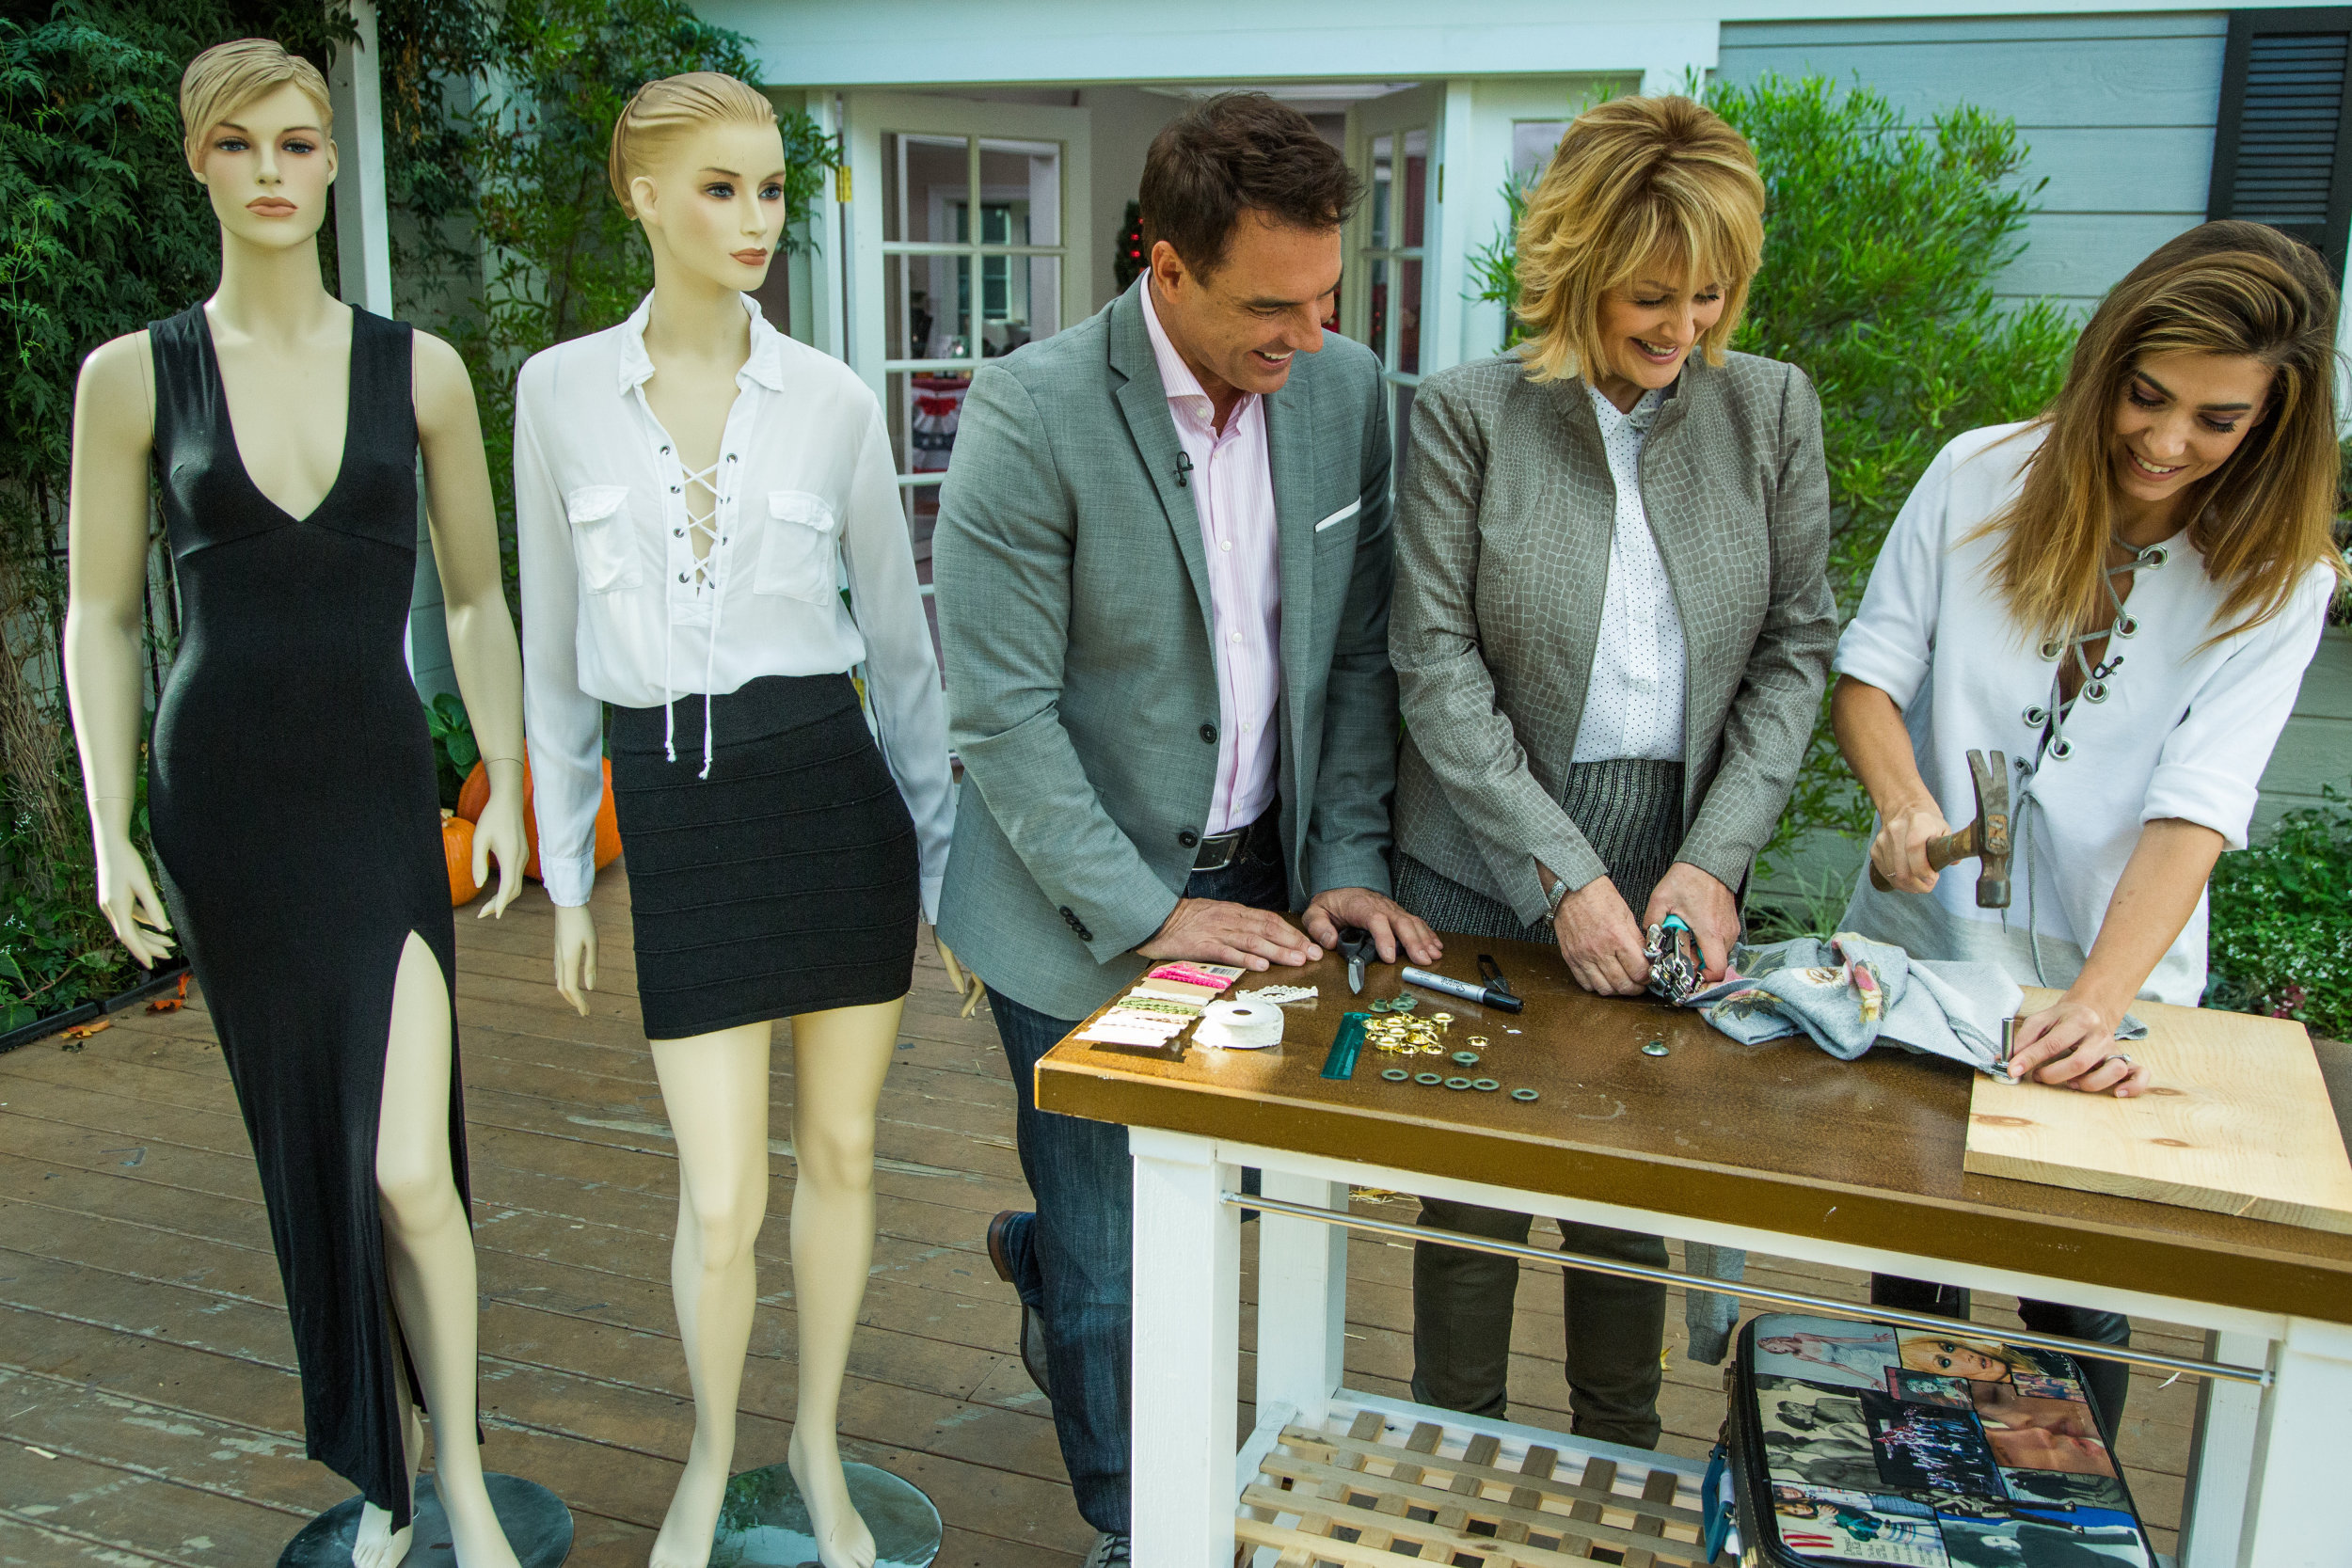 Hollywood steals home and family - Grommet Clothing Home Family